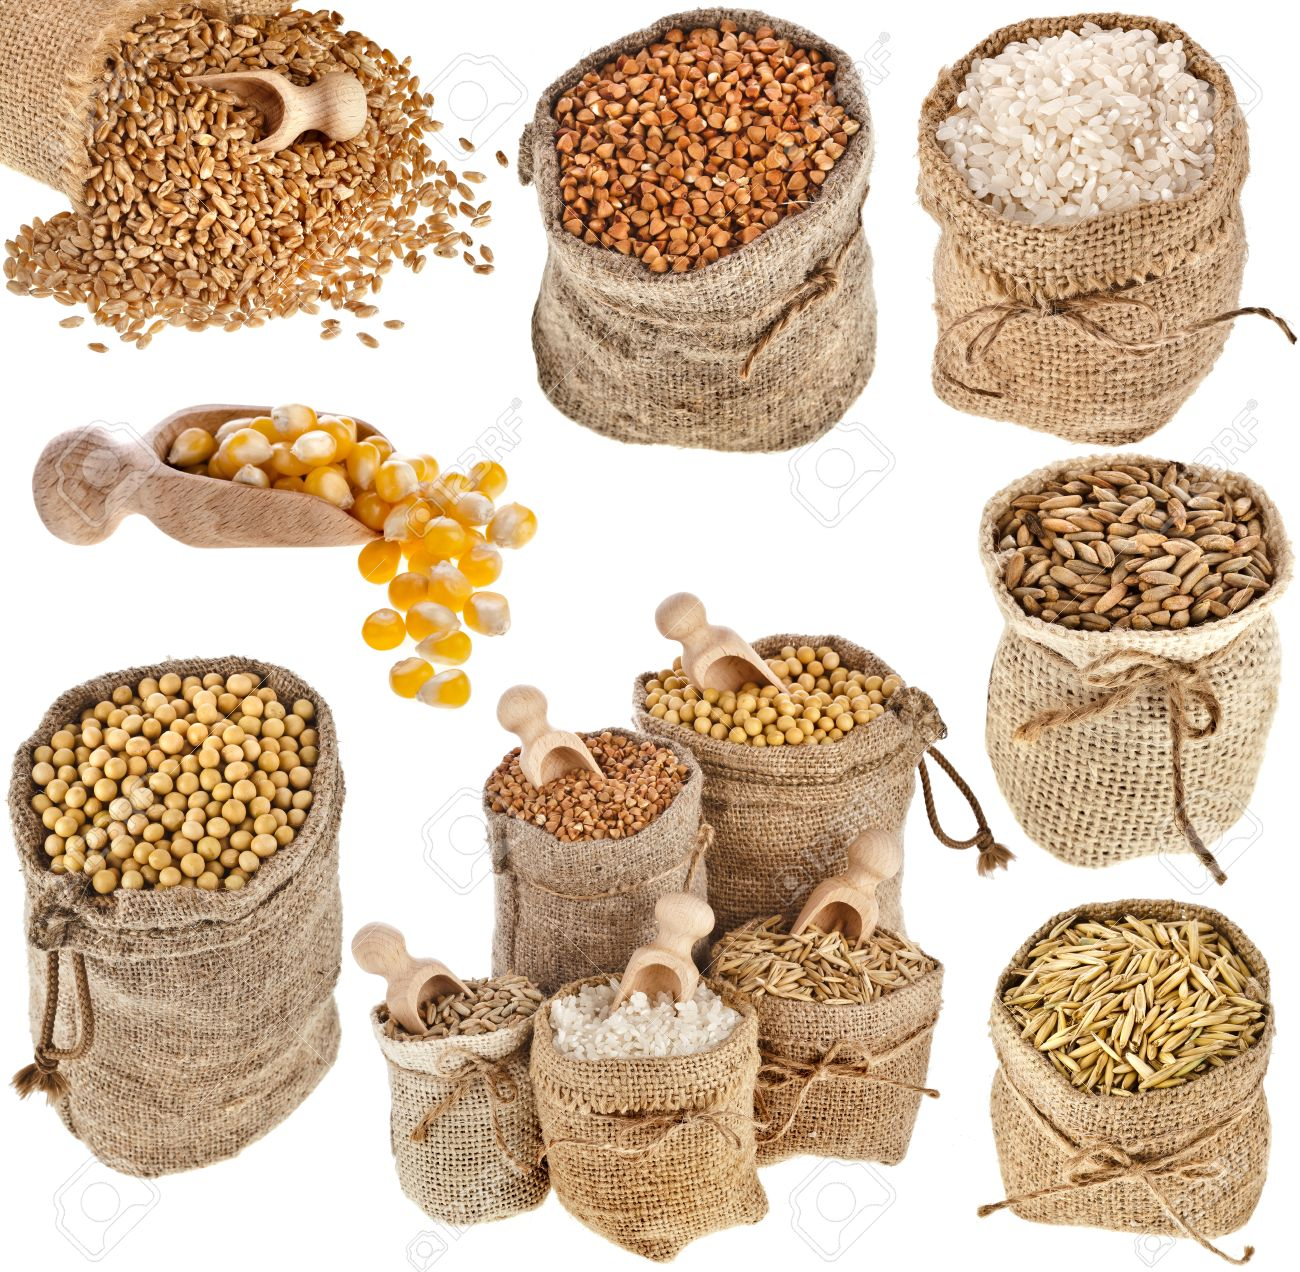 Small burlap bags Pouch Collection Set Of Kinds Of Cereal In Small Burlap Bags Isolated On White Background Stock Photo Poshmark Collection Set Of Kinds Of Cereal In Small Burlap Bags Isolated